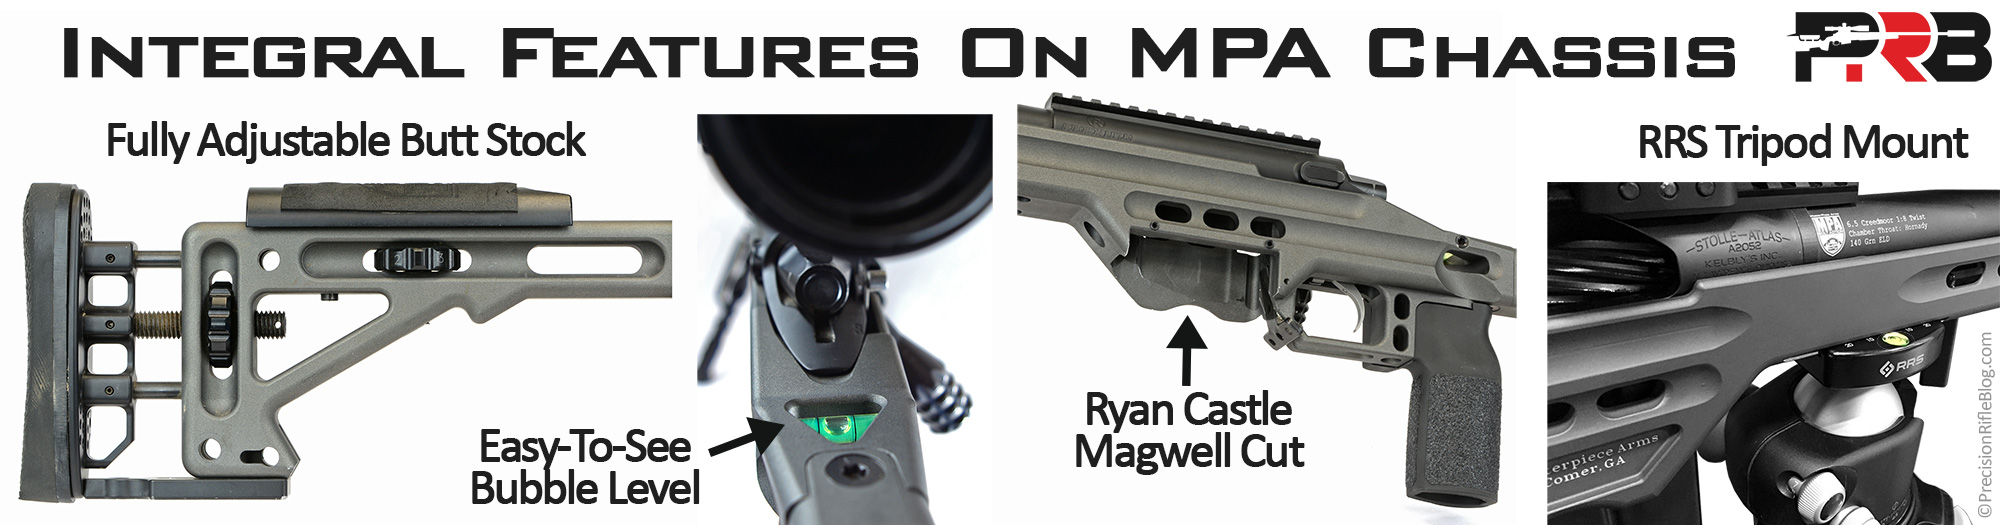 Precision Rifle Chassis & Stocks: What The Pros Use